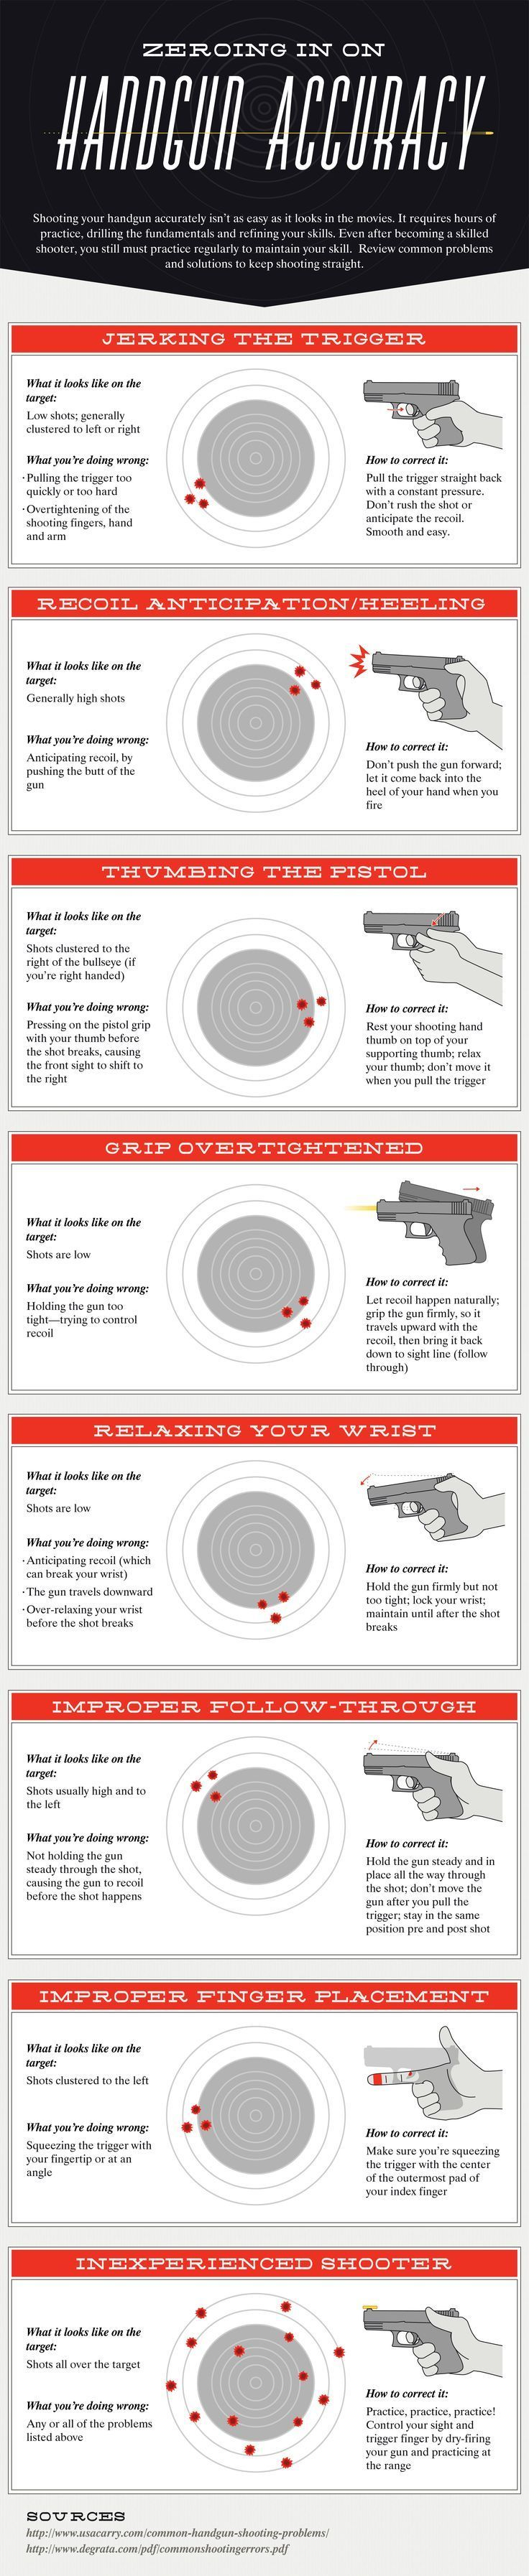 How to Shoot a Pistol | Shop rustic concealed gun cases at www.santanwoodworks.com | Military gifts for men | Concealed gun cases | Wooden American flag | Wooden home decor